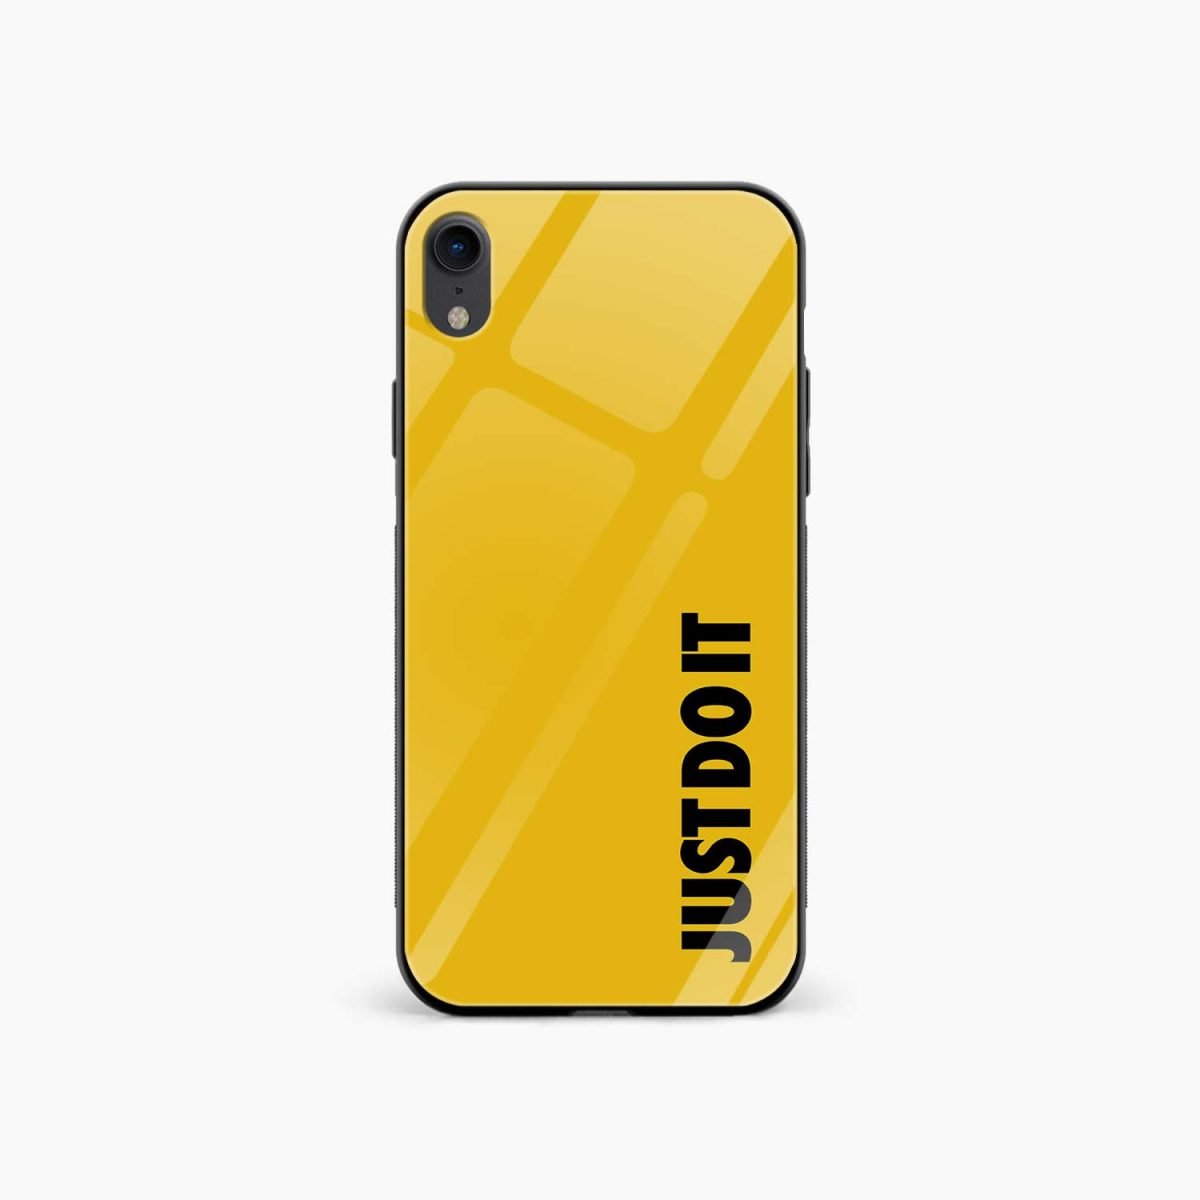 apple iphone xr back cover front view 3